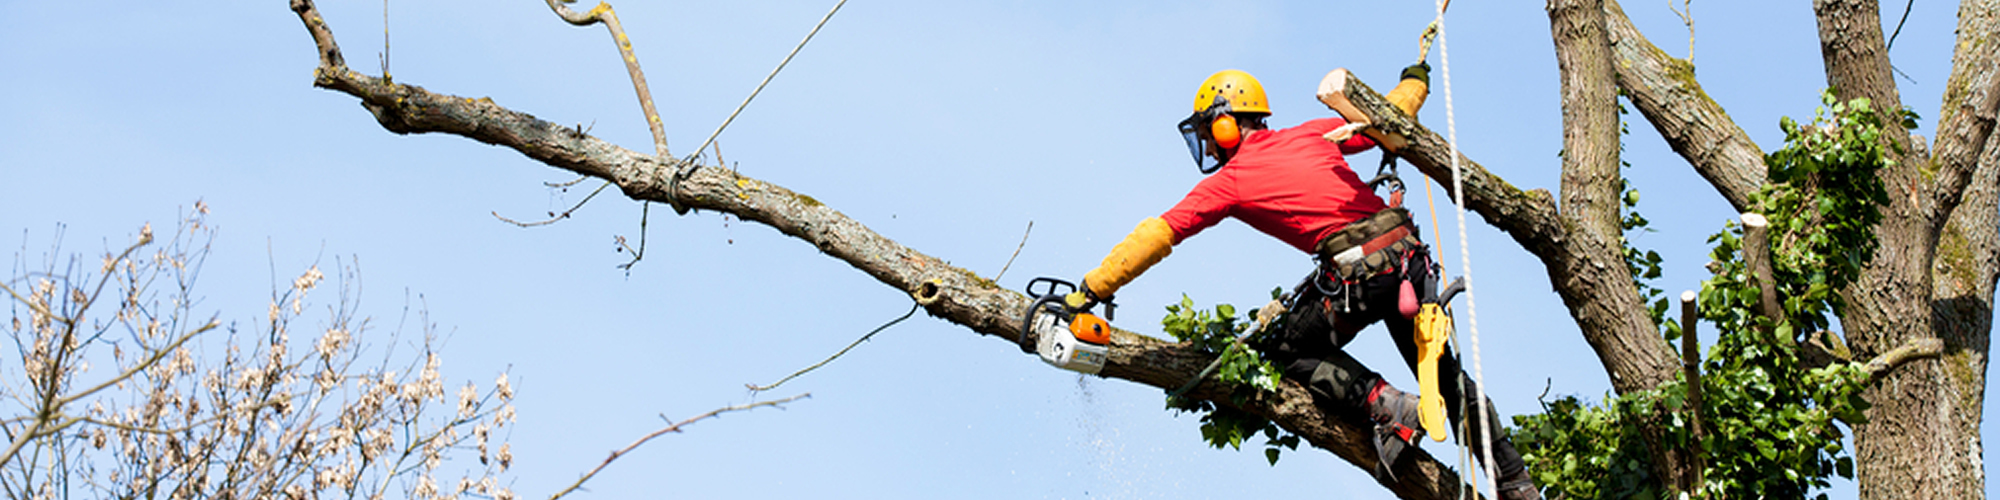 Bucks Tree Services - Tree Felling